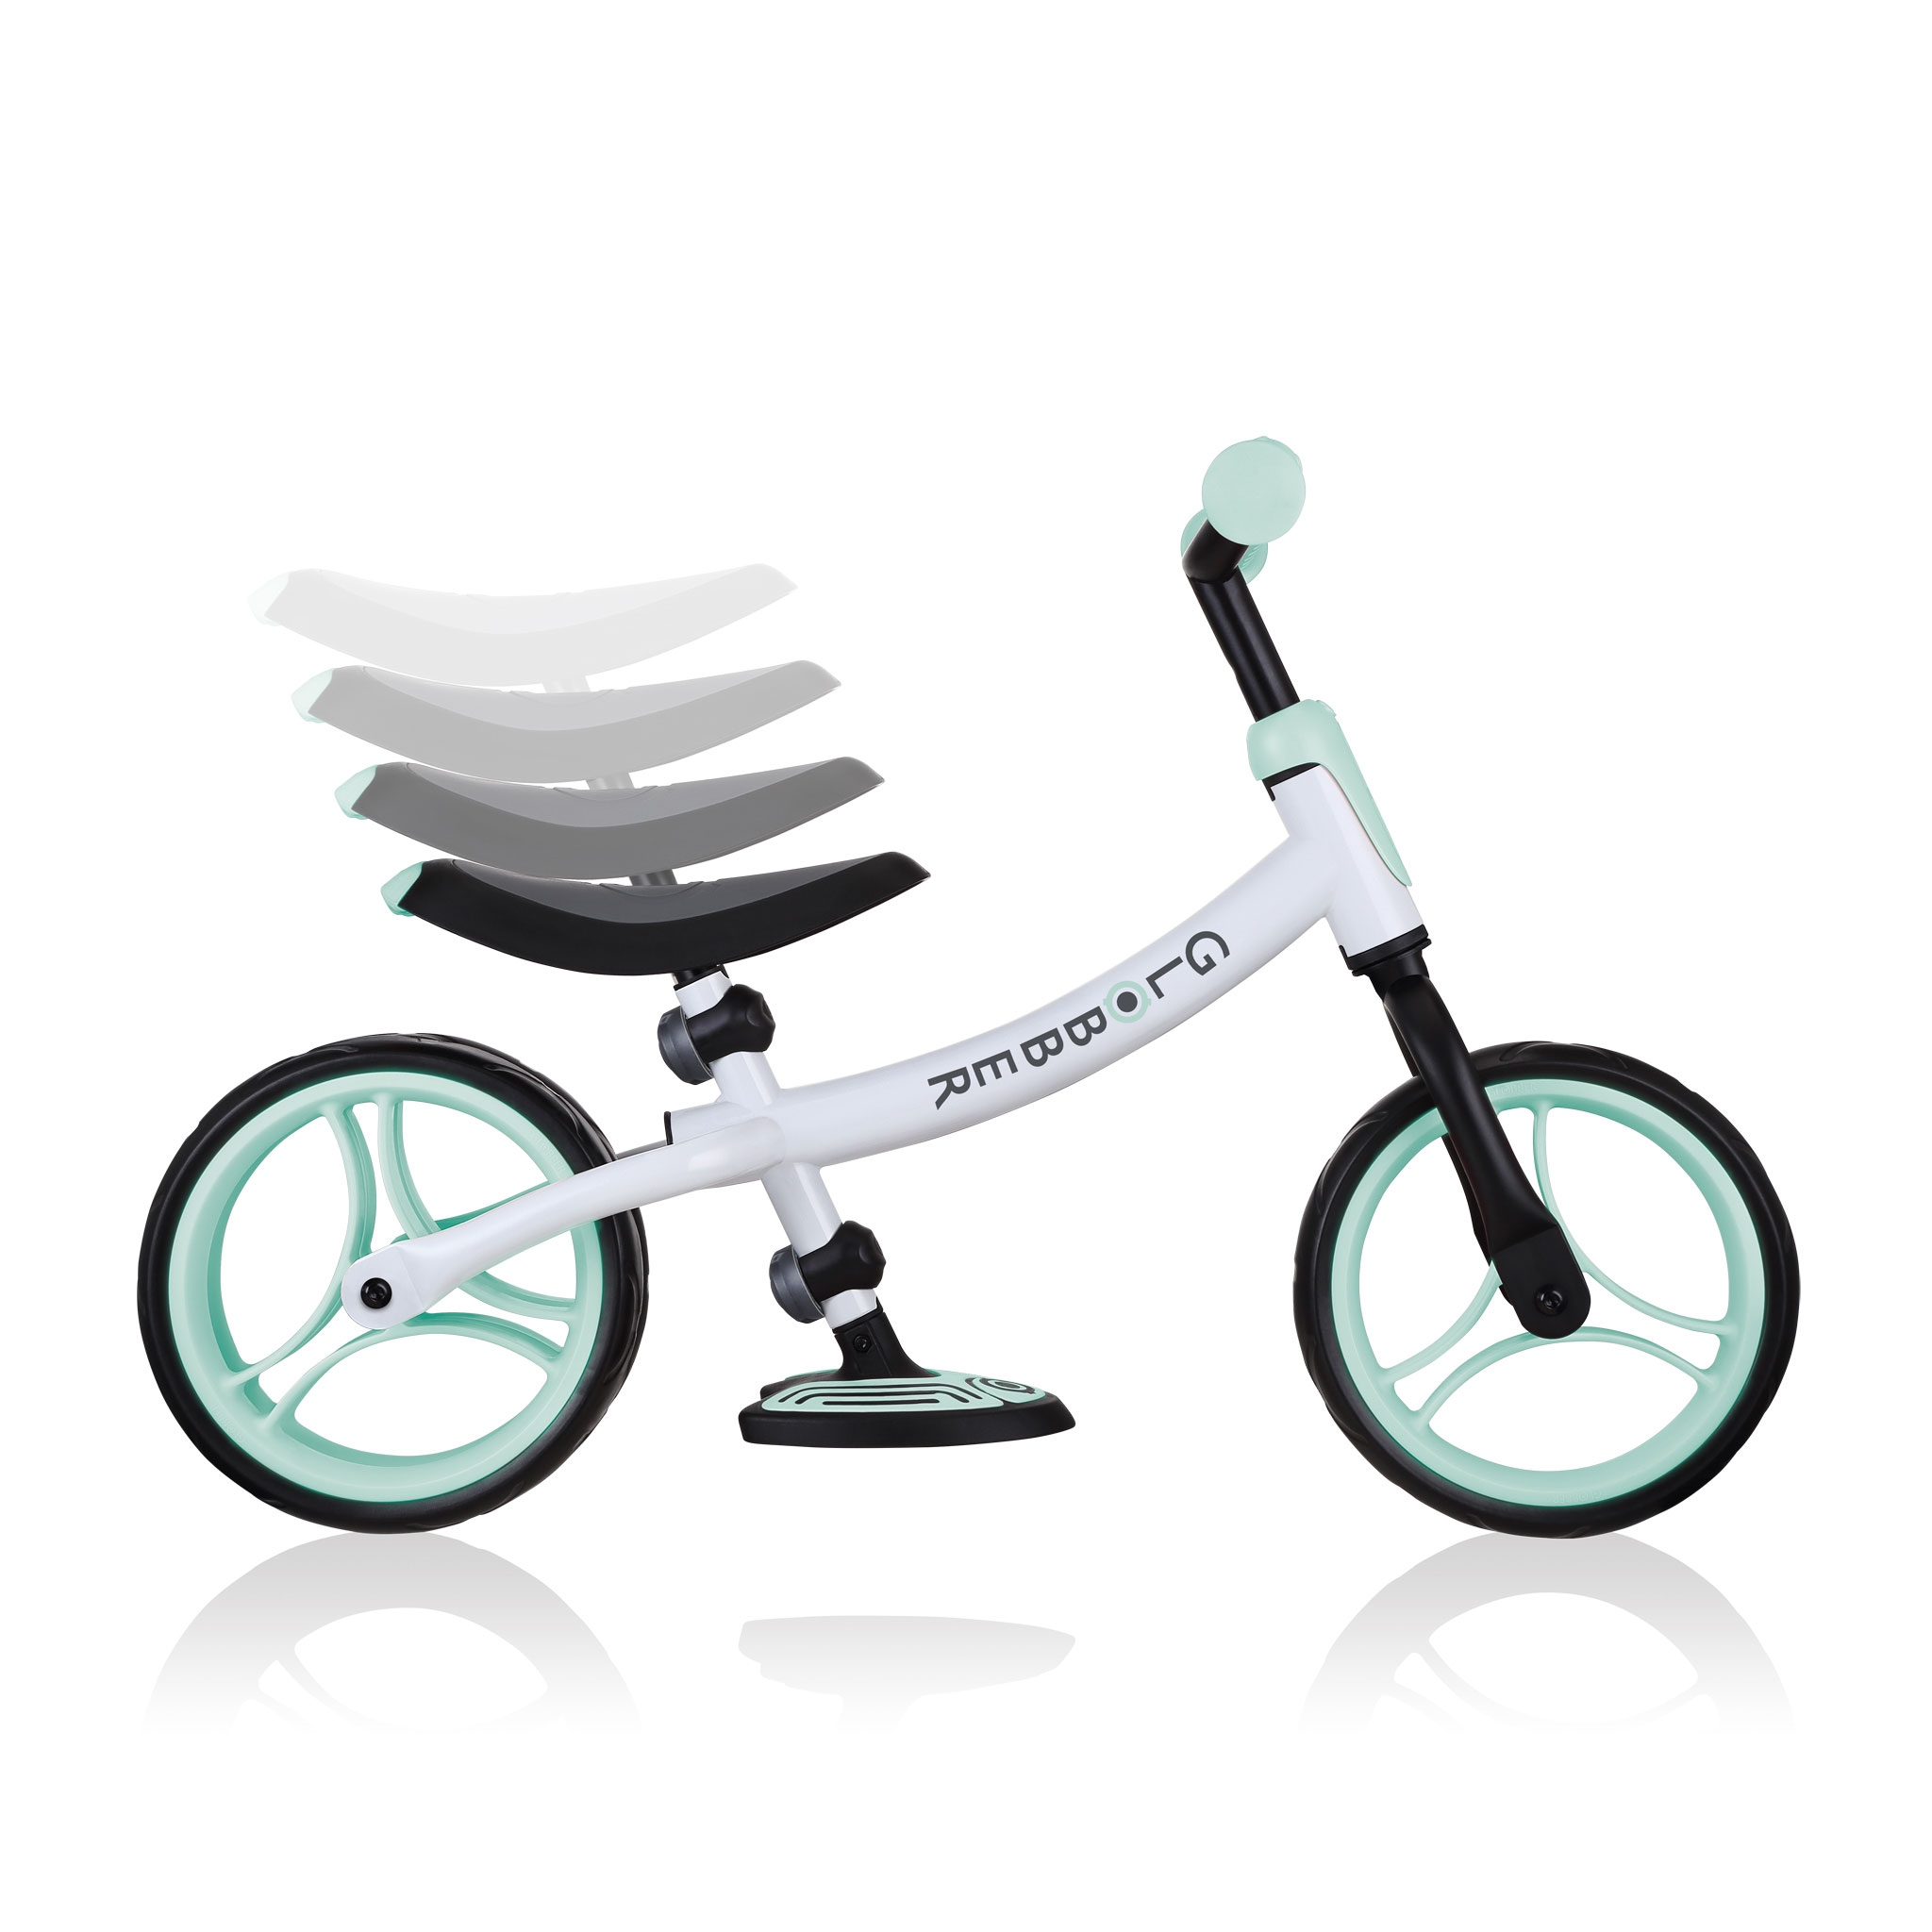 GO-BIKE-DUO-adjustable-balance-bike-for-toddlers-and-kids-with-8-height-adjustable-seat-and-2-height-adjustable-handlebars_mint 2